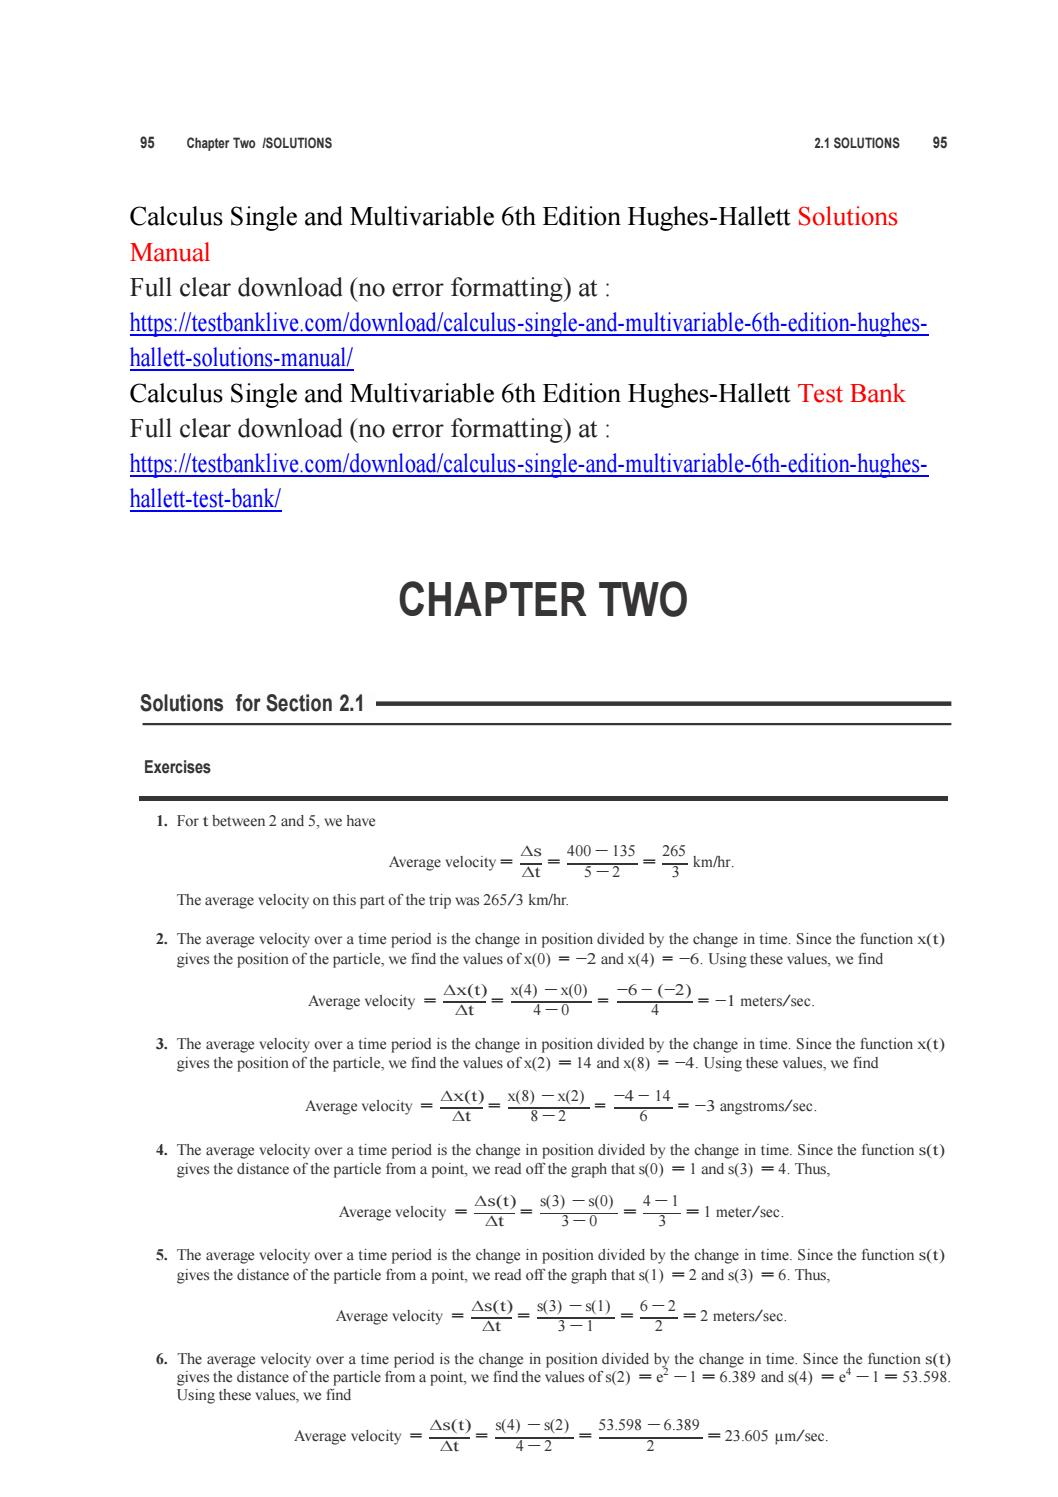 Calculus single and multivariable 6th edition hughes hallett solutions  manual by anna5551 - issuu